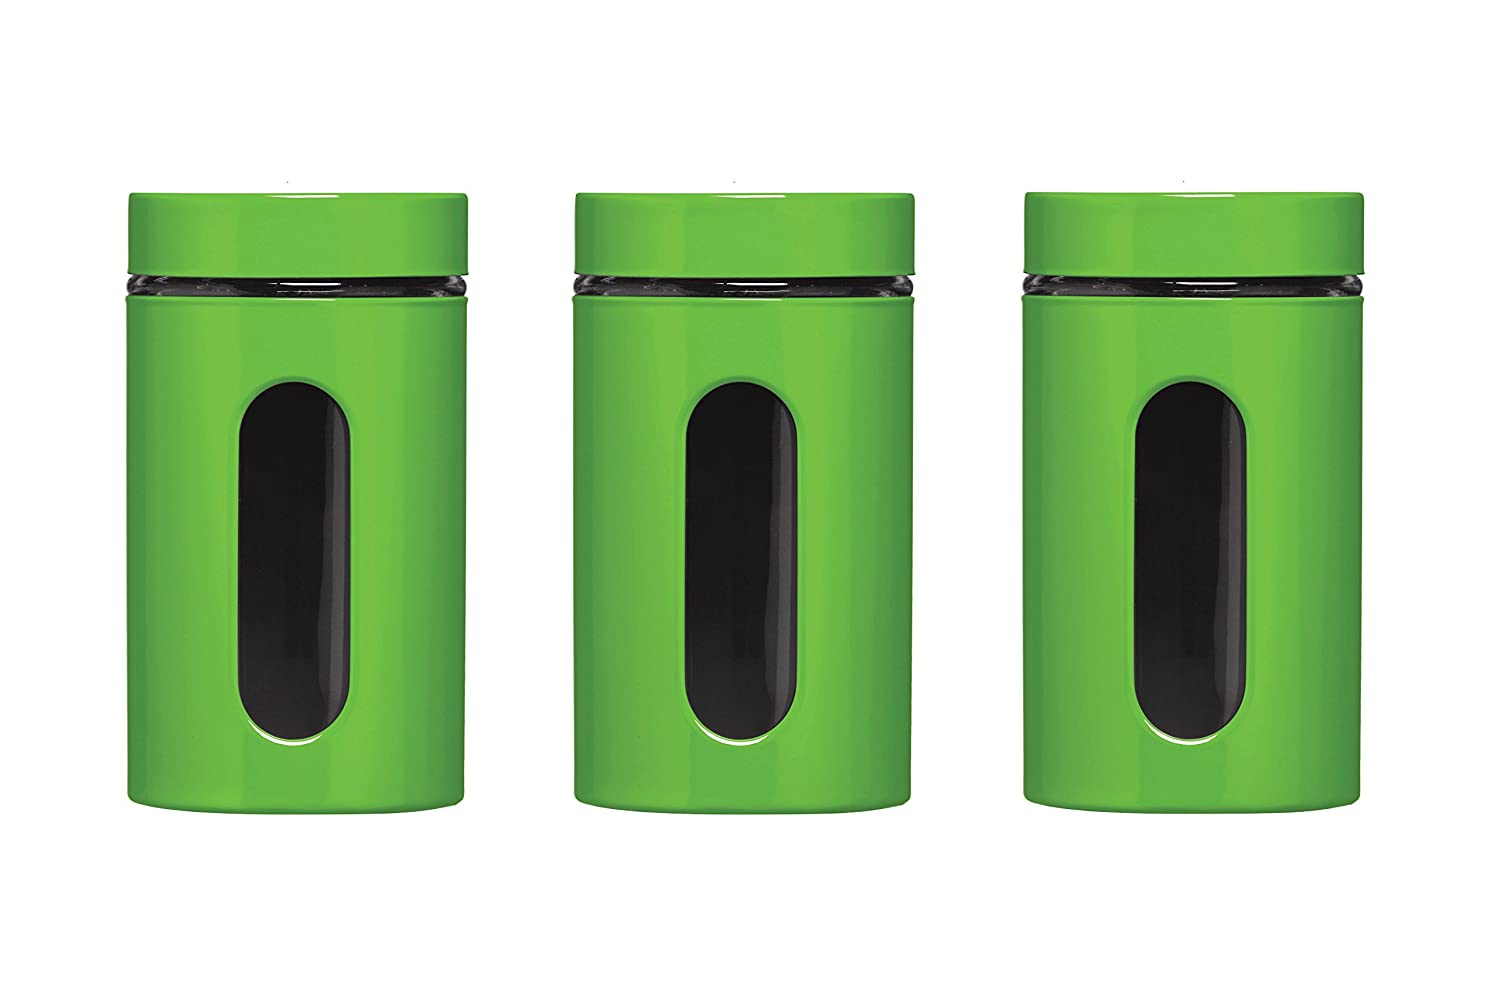 Premier Housewares Storage Canisters   Green, Set Of 3: Amazon.co.uk:  Kitchen U0026 Home